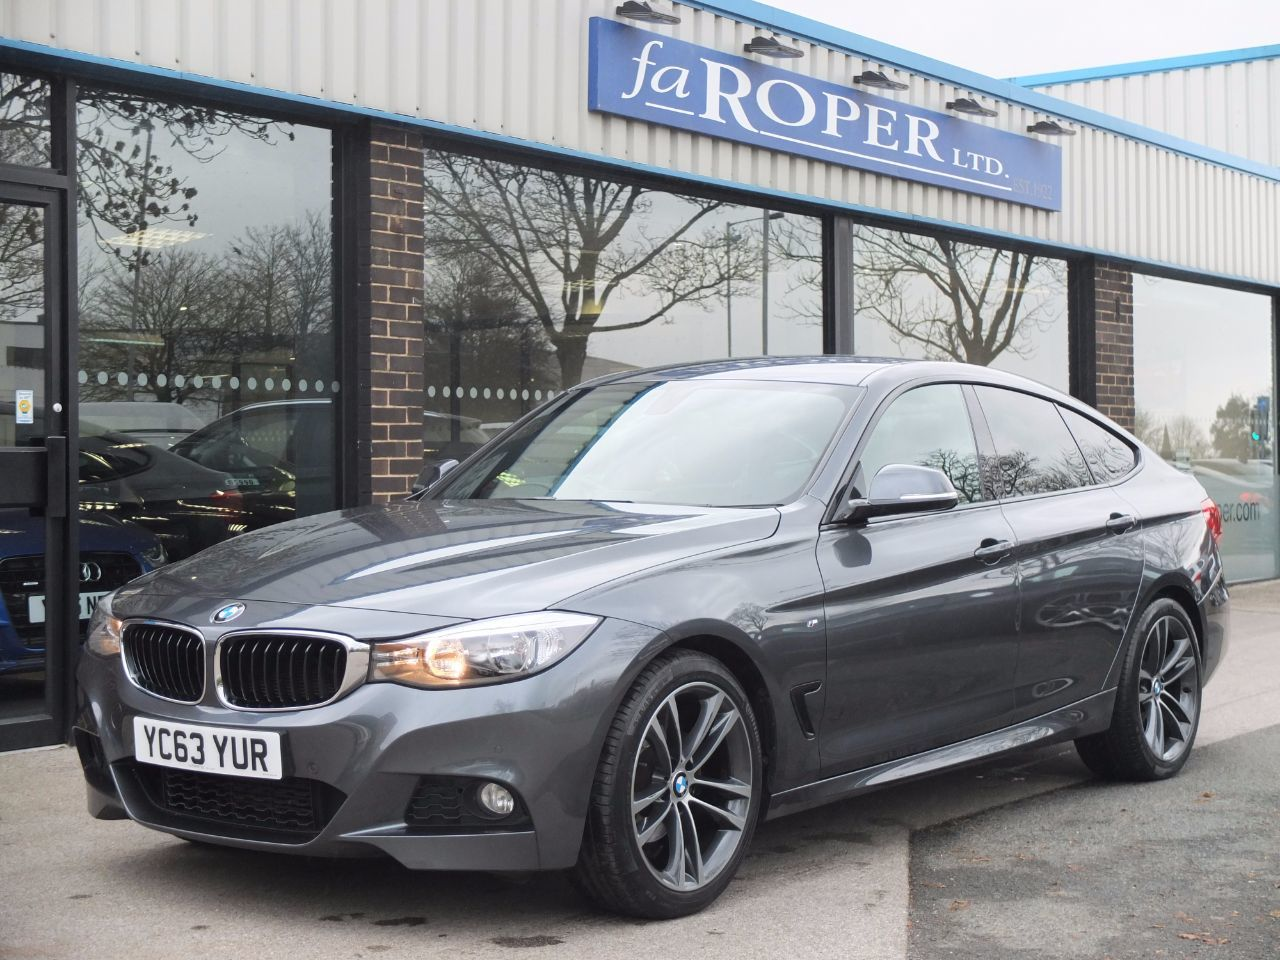 second hand bmw 3 series 320d m sport gt gran turismo 5 door auto for sale in bradford west. Black Bedroom Furniture Sets. Home Design Ideas